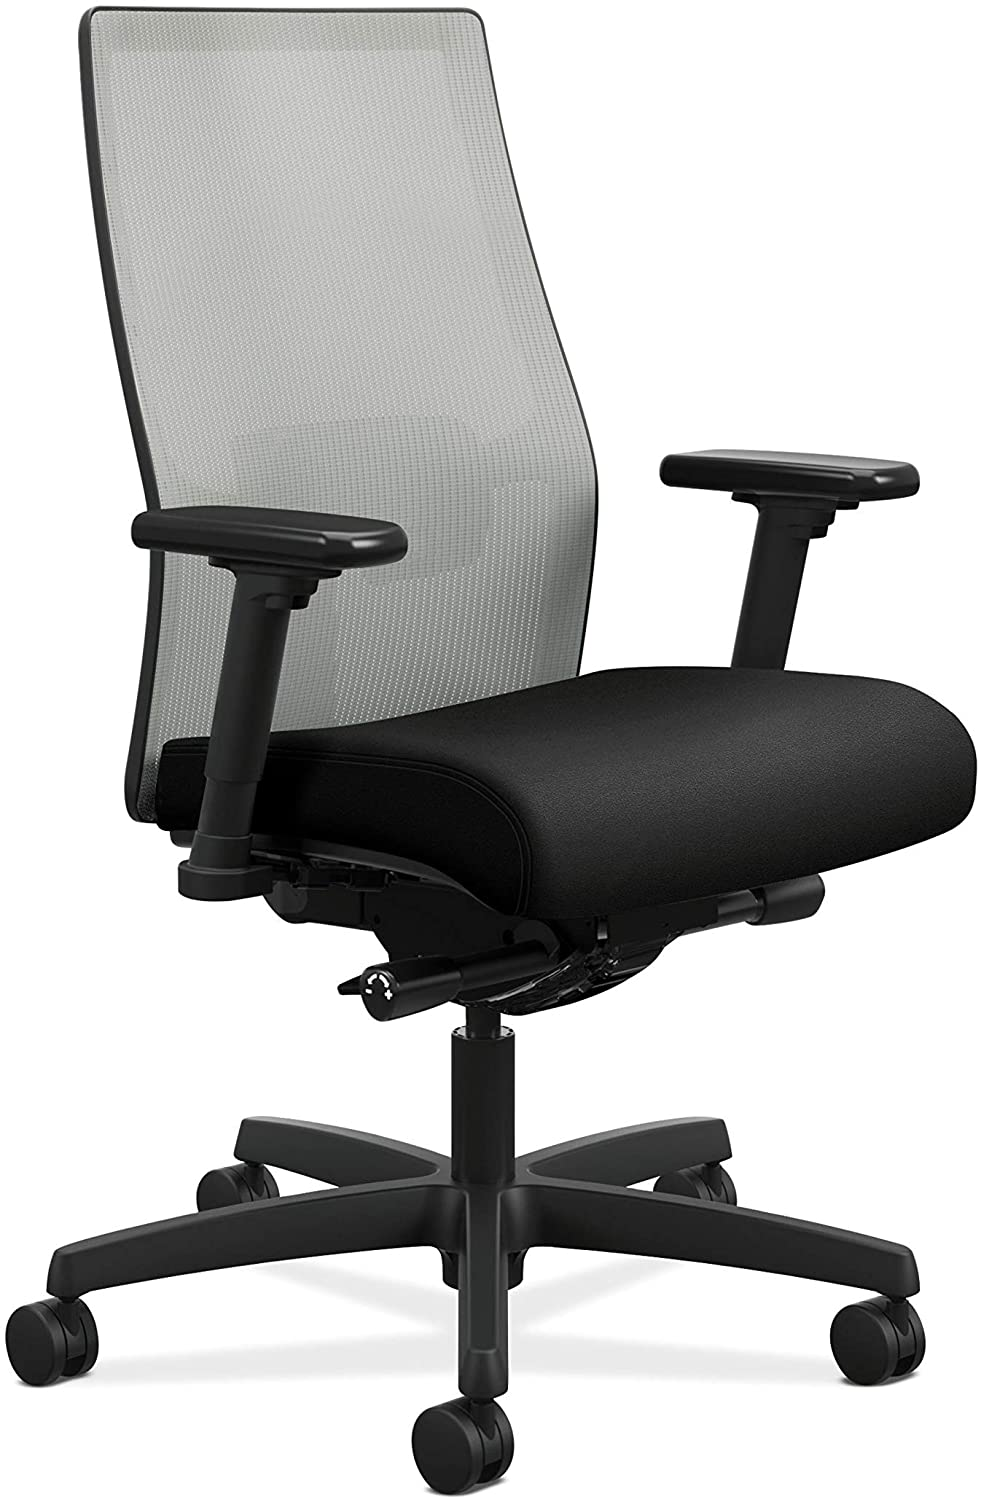 Ignition 2.0 Mid-Back Adjustable Chair